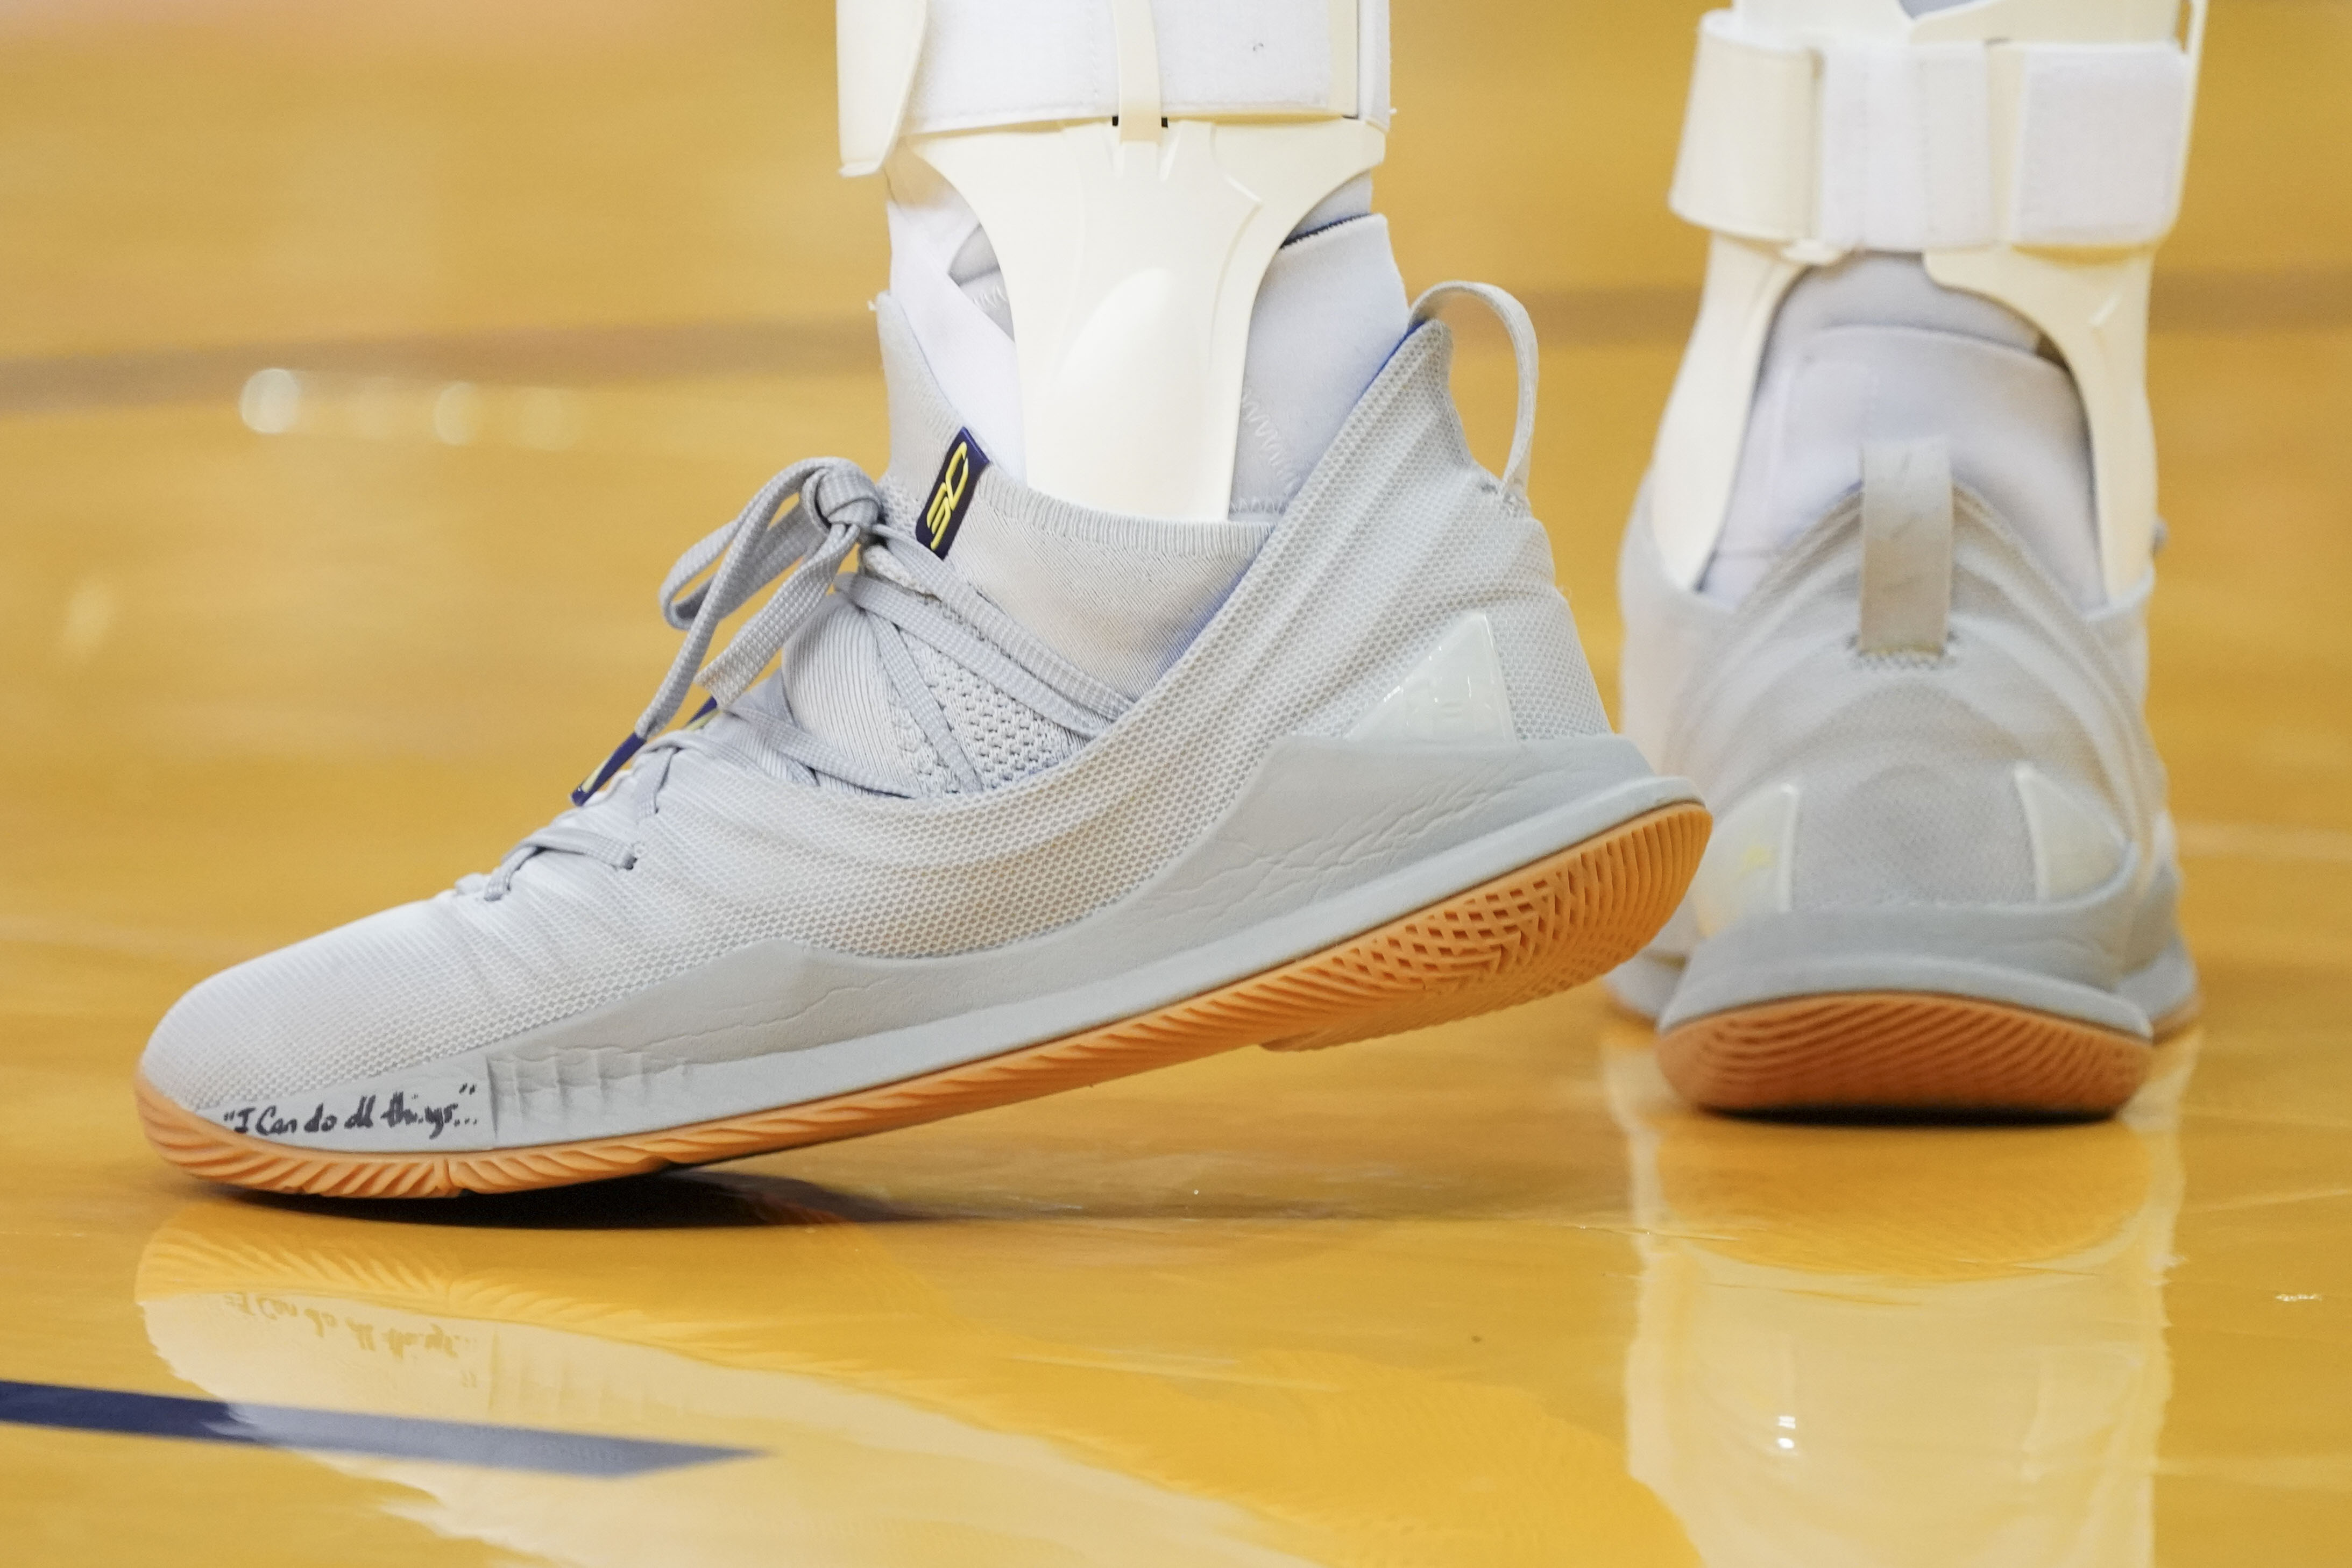 20a2594a144 Not Your Average Review  Under Armour Curry 5 - Peachtree Hoops